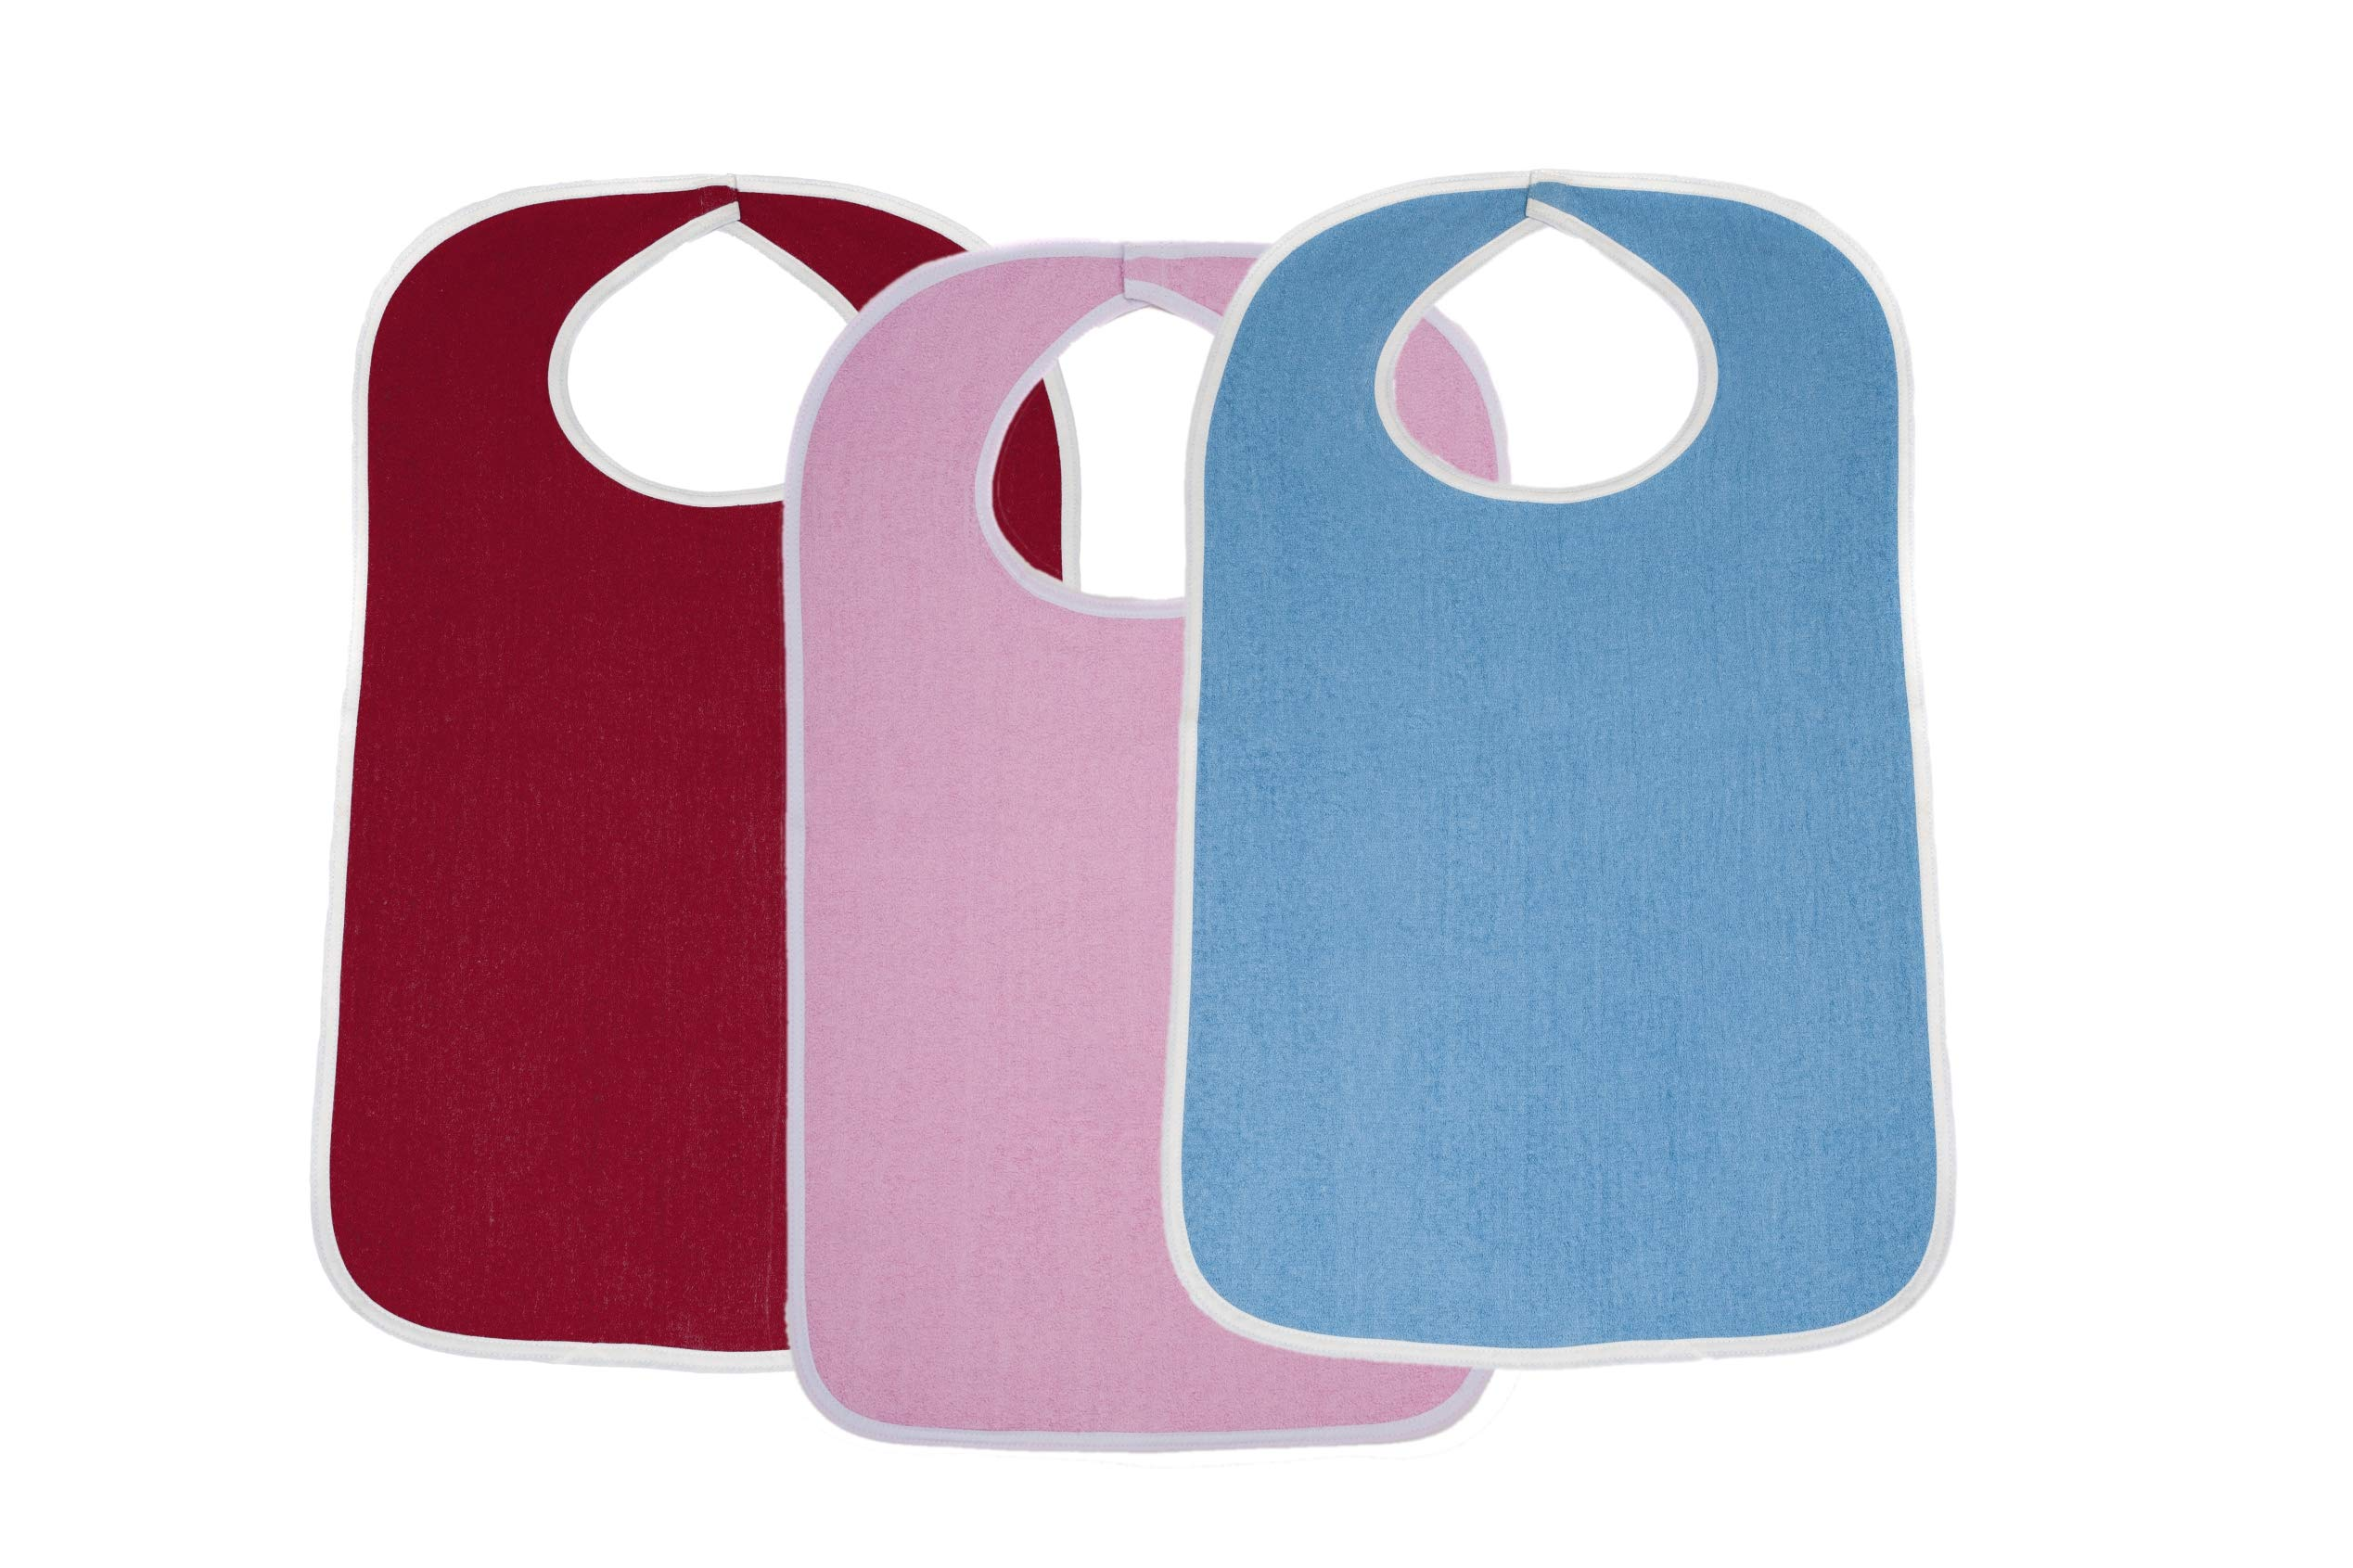 Terry Cloth Adult Size Senior Bib Value Pack with Hook & Loop Closure - Elderly Men and Women Food Catcher Solutions (Assorted Pack 2, 36 Pack) by ComfortFinds (Image #1)